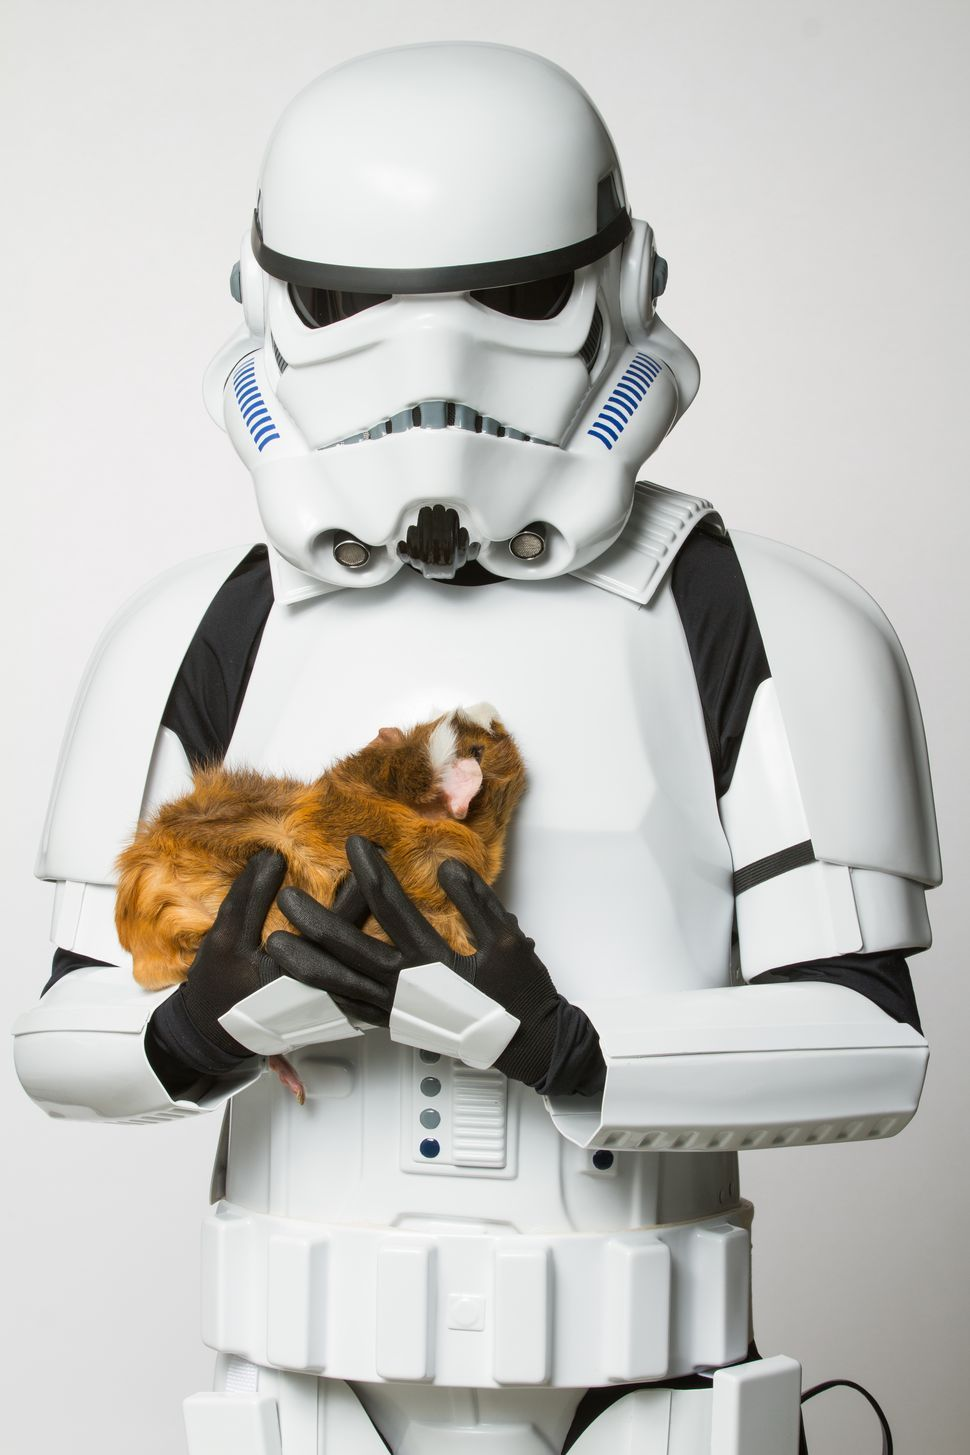 Stormtroopers with kittens? 'Star Wars' villains show their soft side